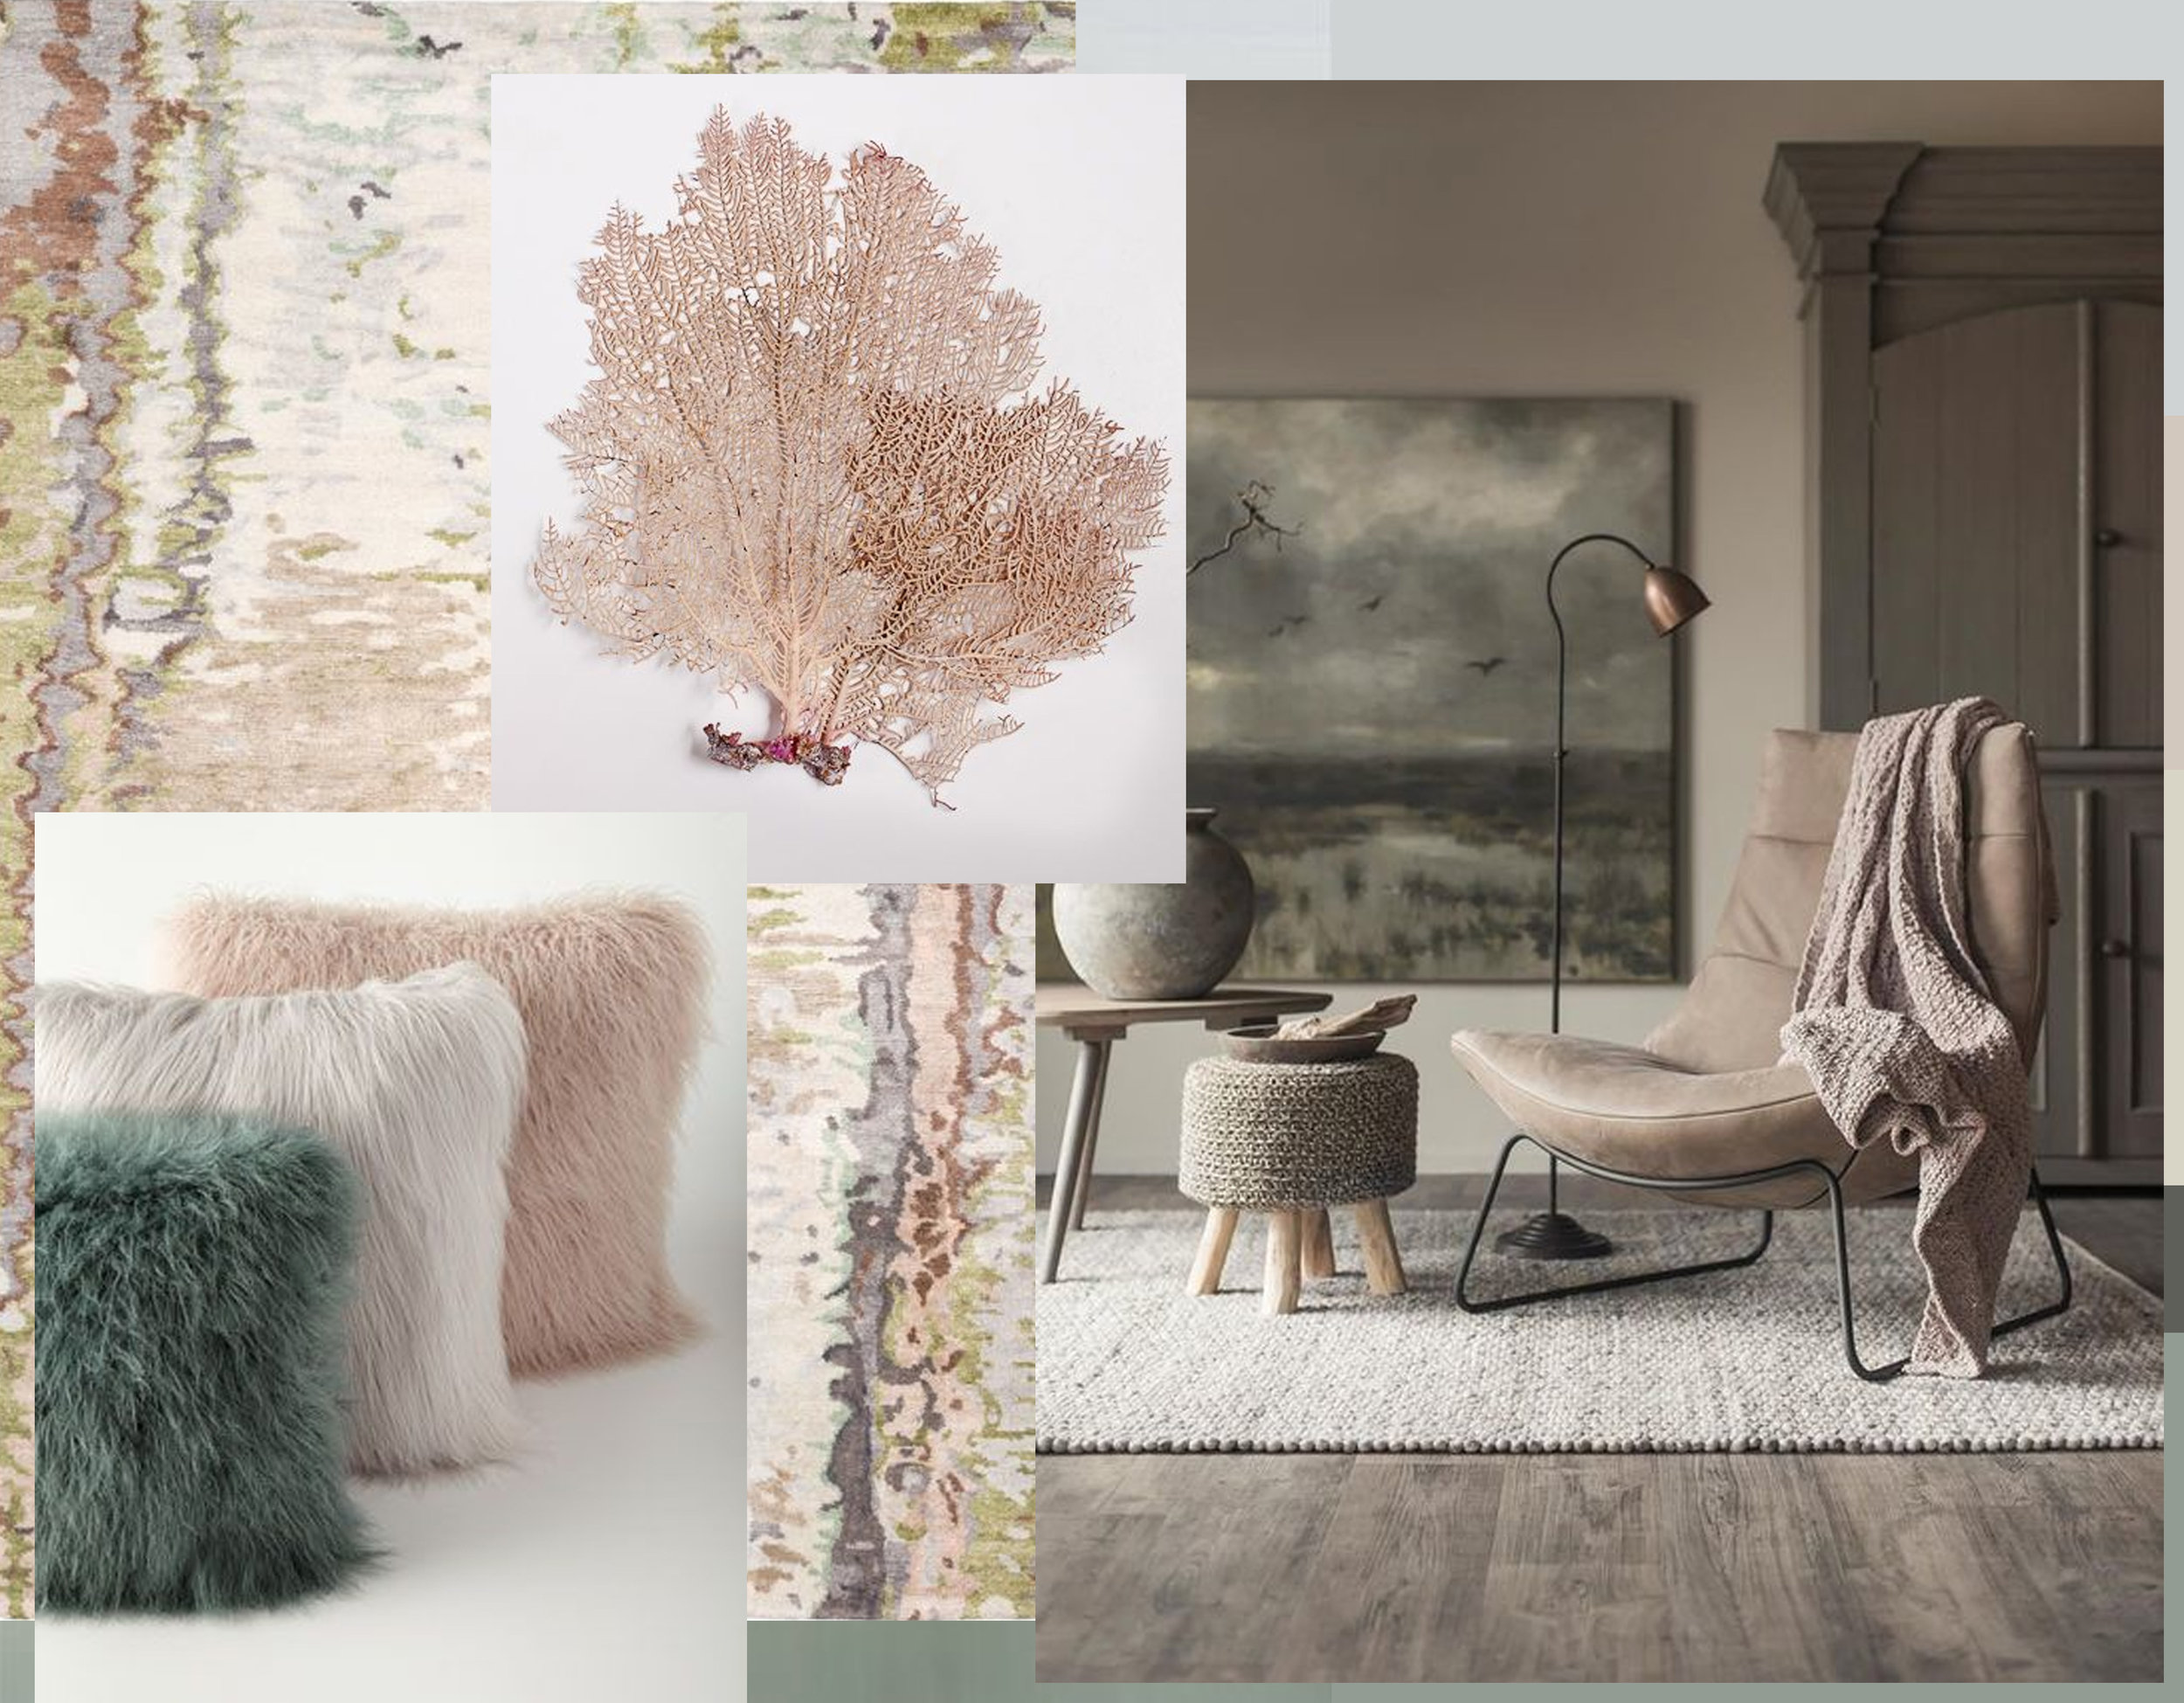 Tidal rug  The Rug Company  - faux-fur cushions via  Dirtbin Design  -  Collage with Nature  - interior image via  Woonhuis